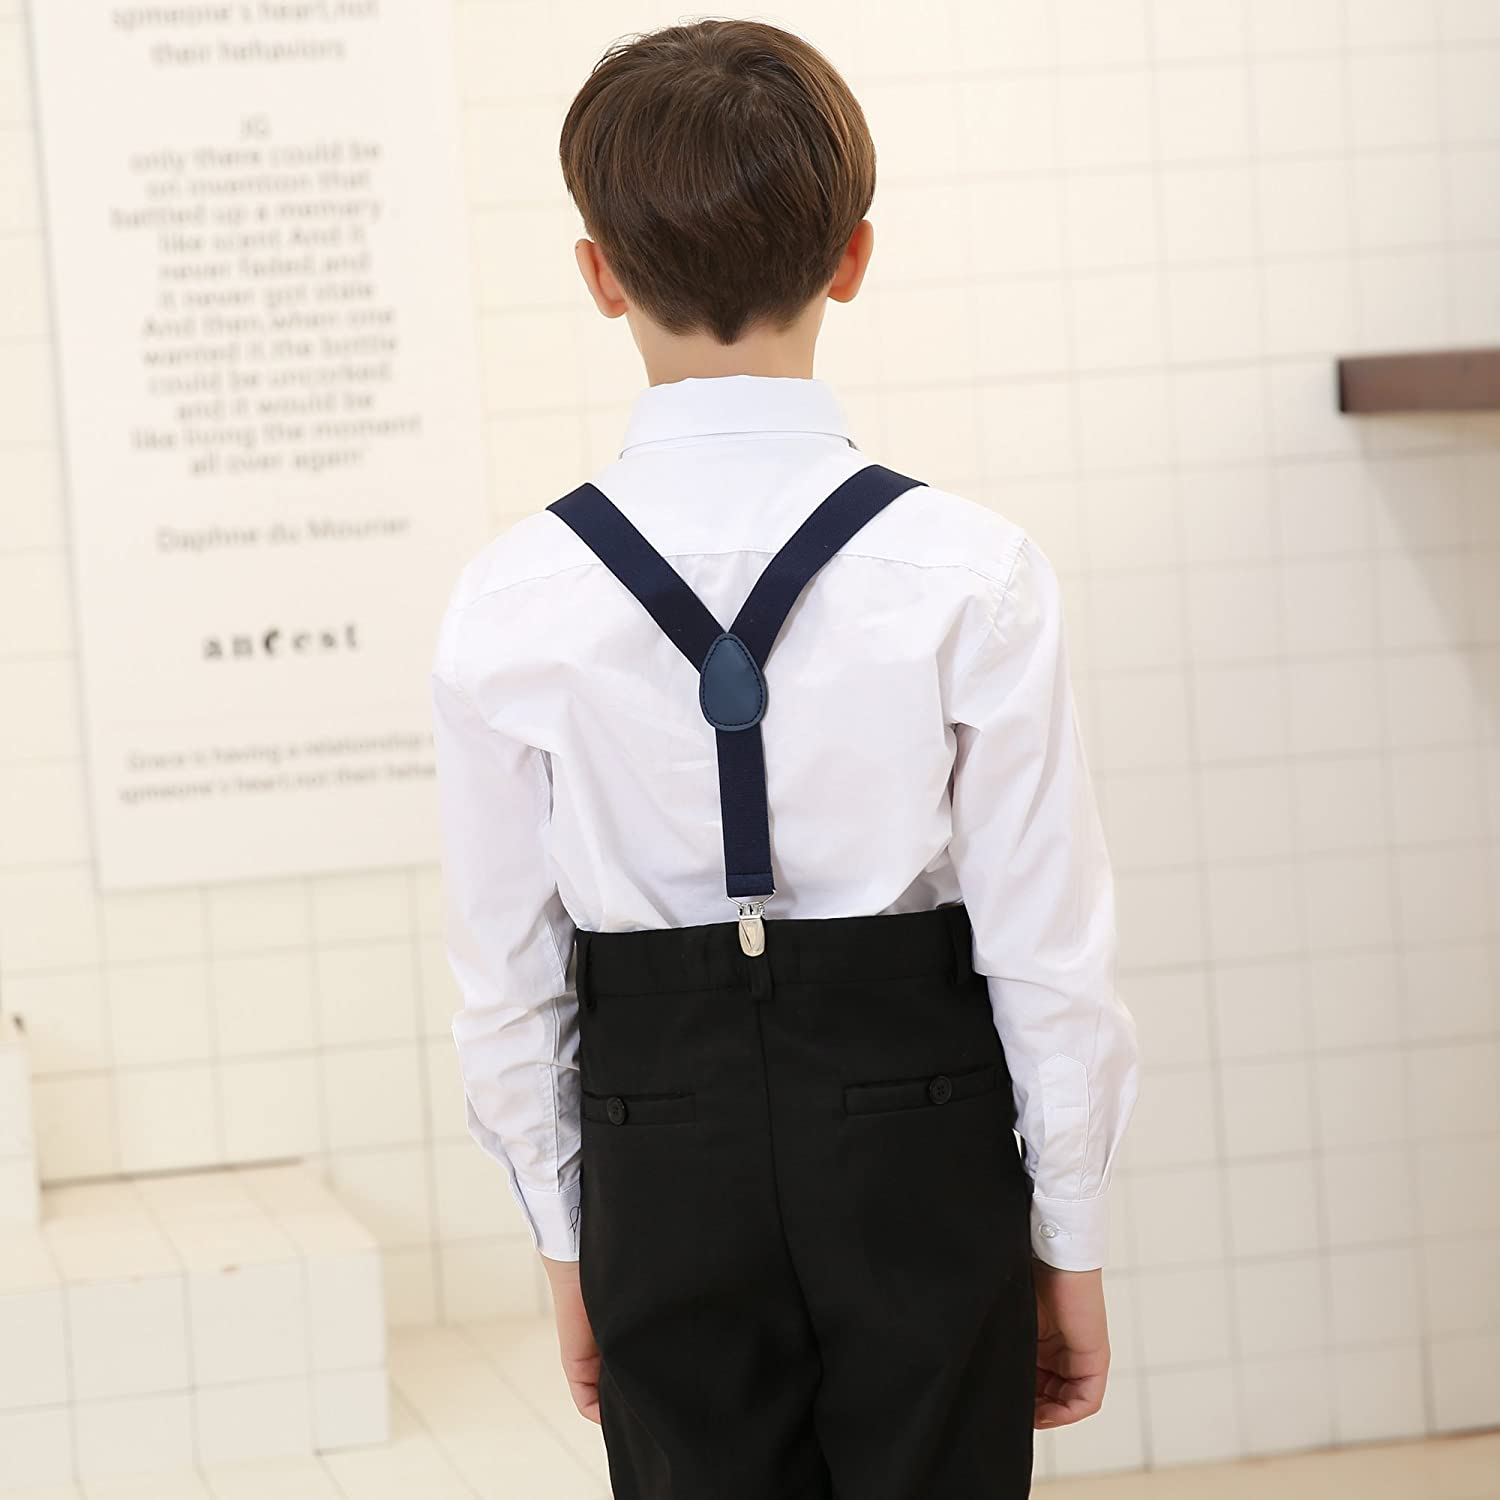 Boys Suspender Bowtie Necktie Sets - Adjustable Elastic Classic Accessory Sets for Boys /& Girls /(Black/) Jerrybaby